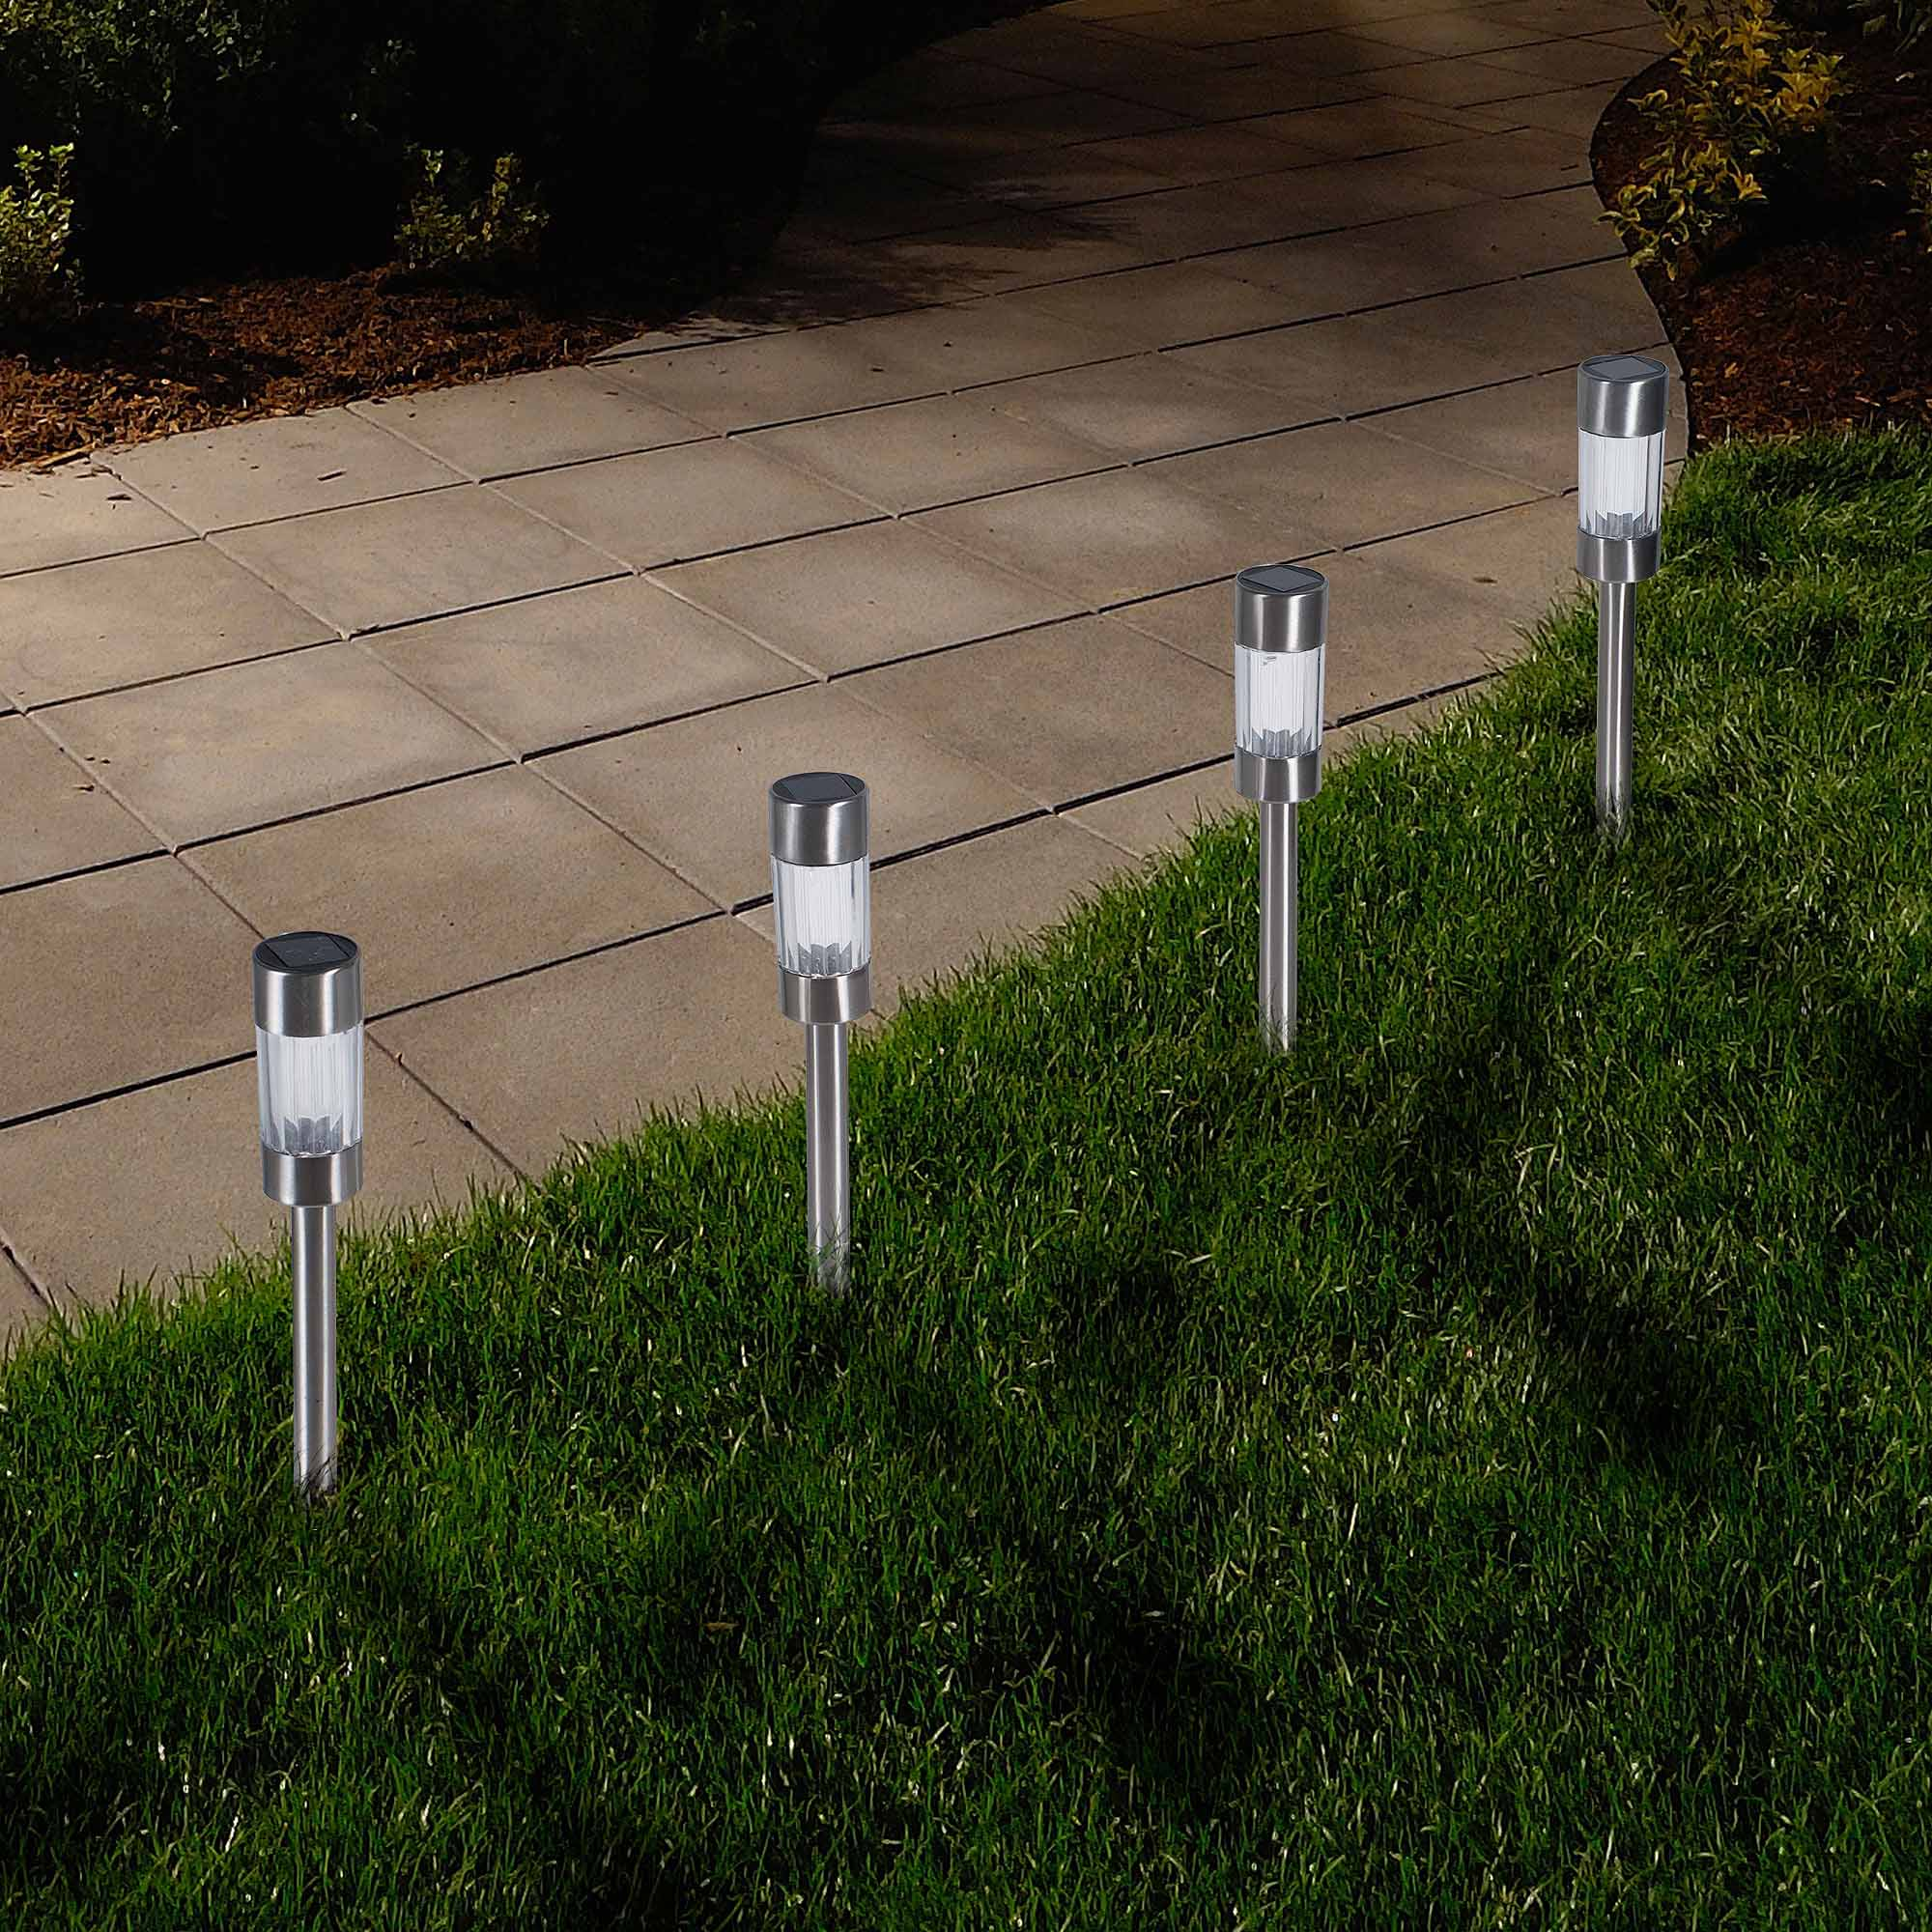 Pure Garden Outdoor Solar Yard Pathway Lights, 6pk